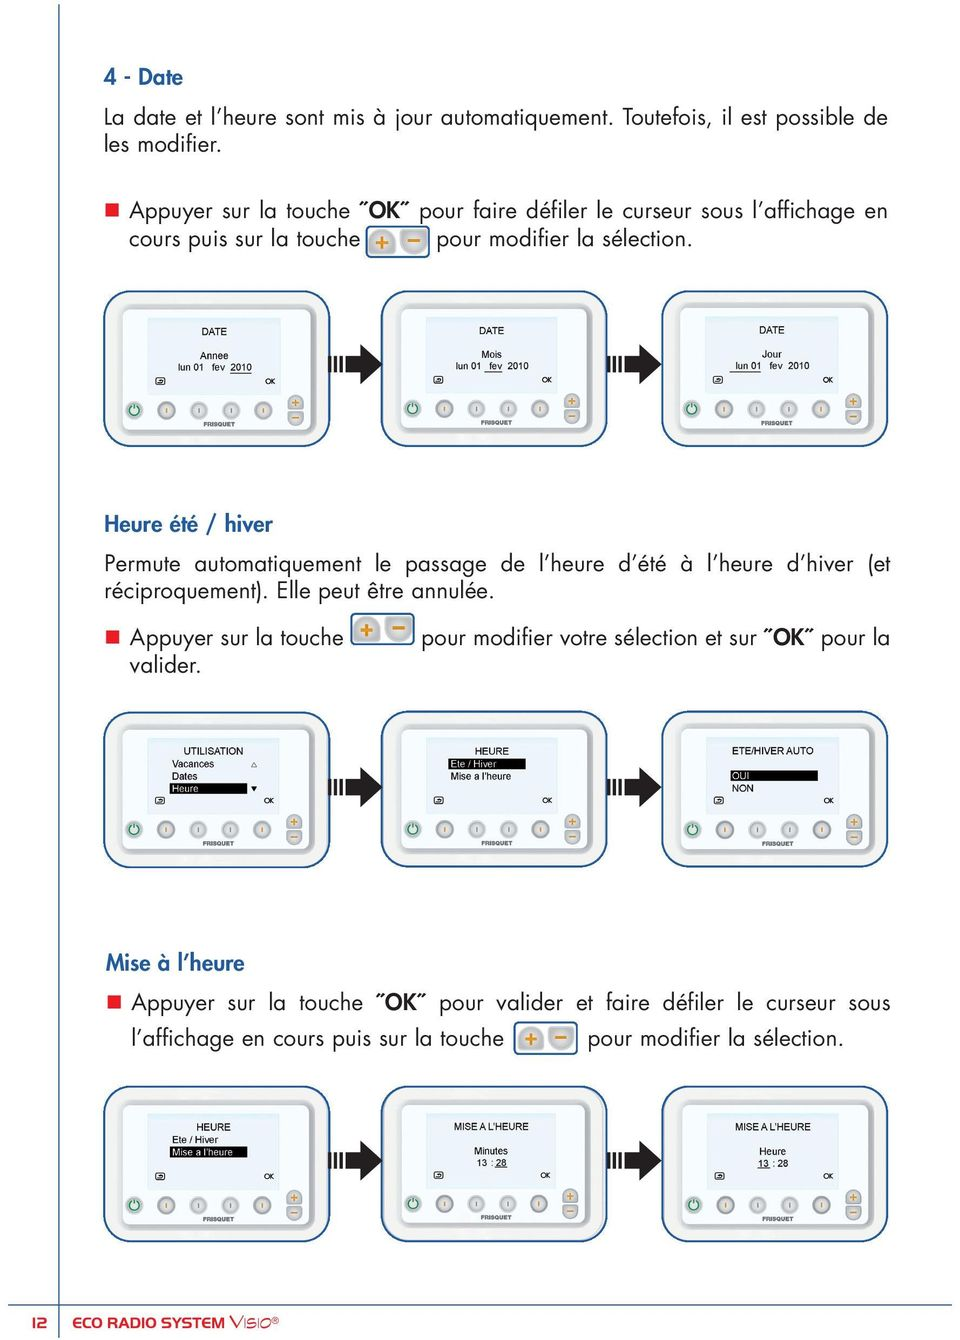 Eco radio system visio frisquet image with eco radio for Frisquet prestige eco radio system